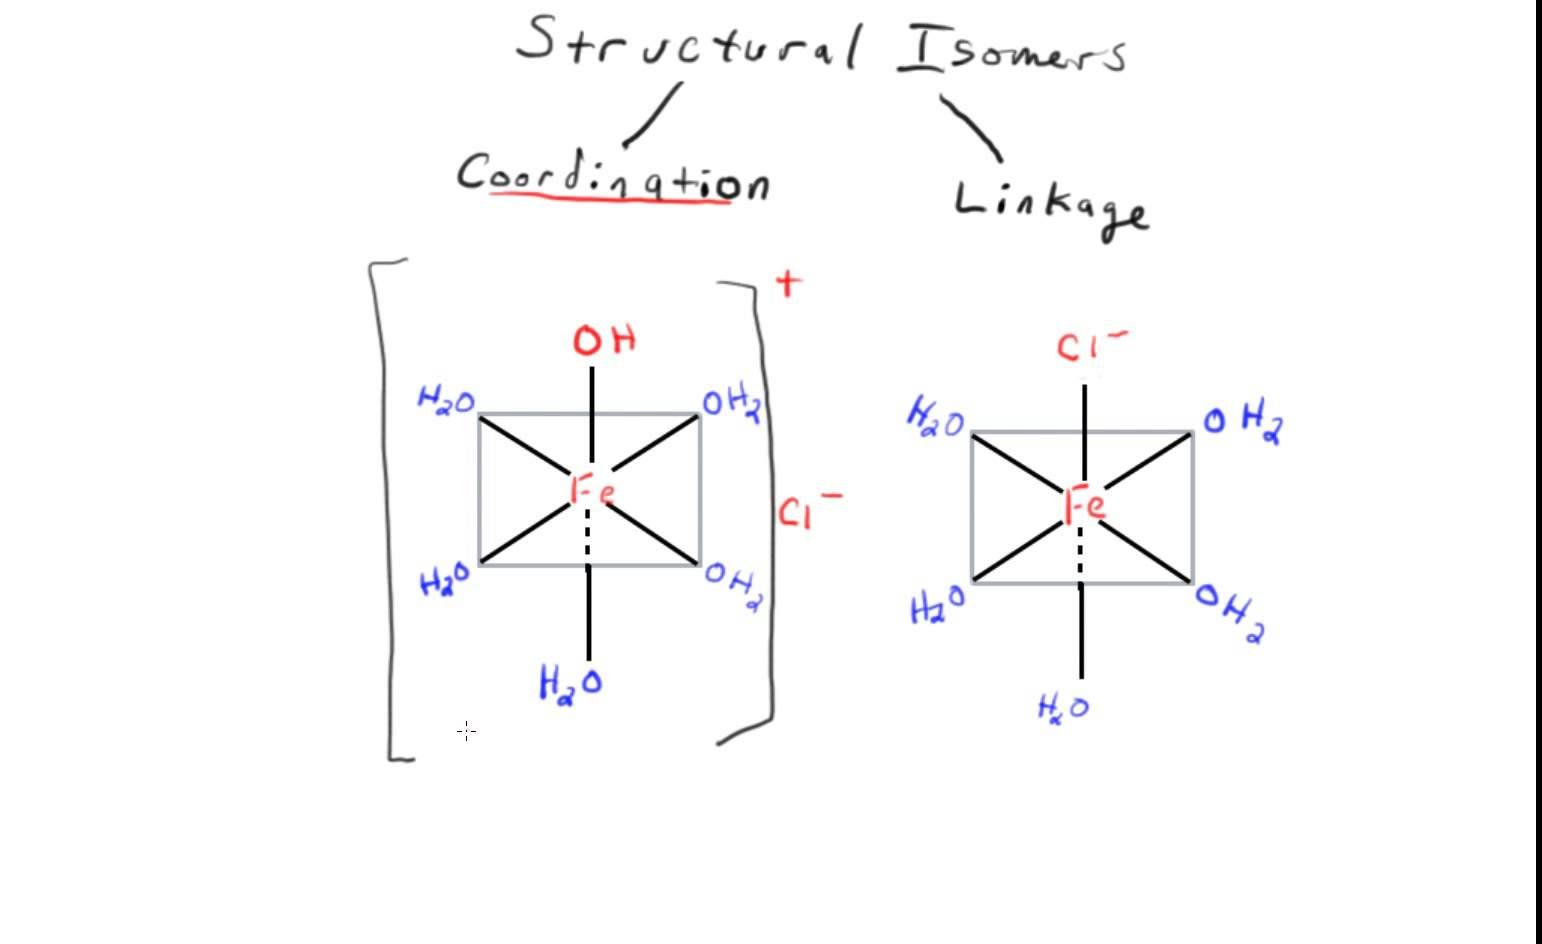 hight resolution of structural isomers of a complex ion chemistry line chart